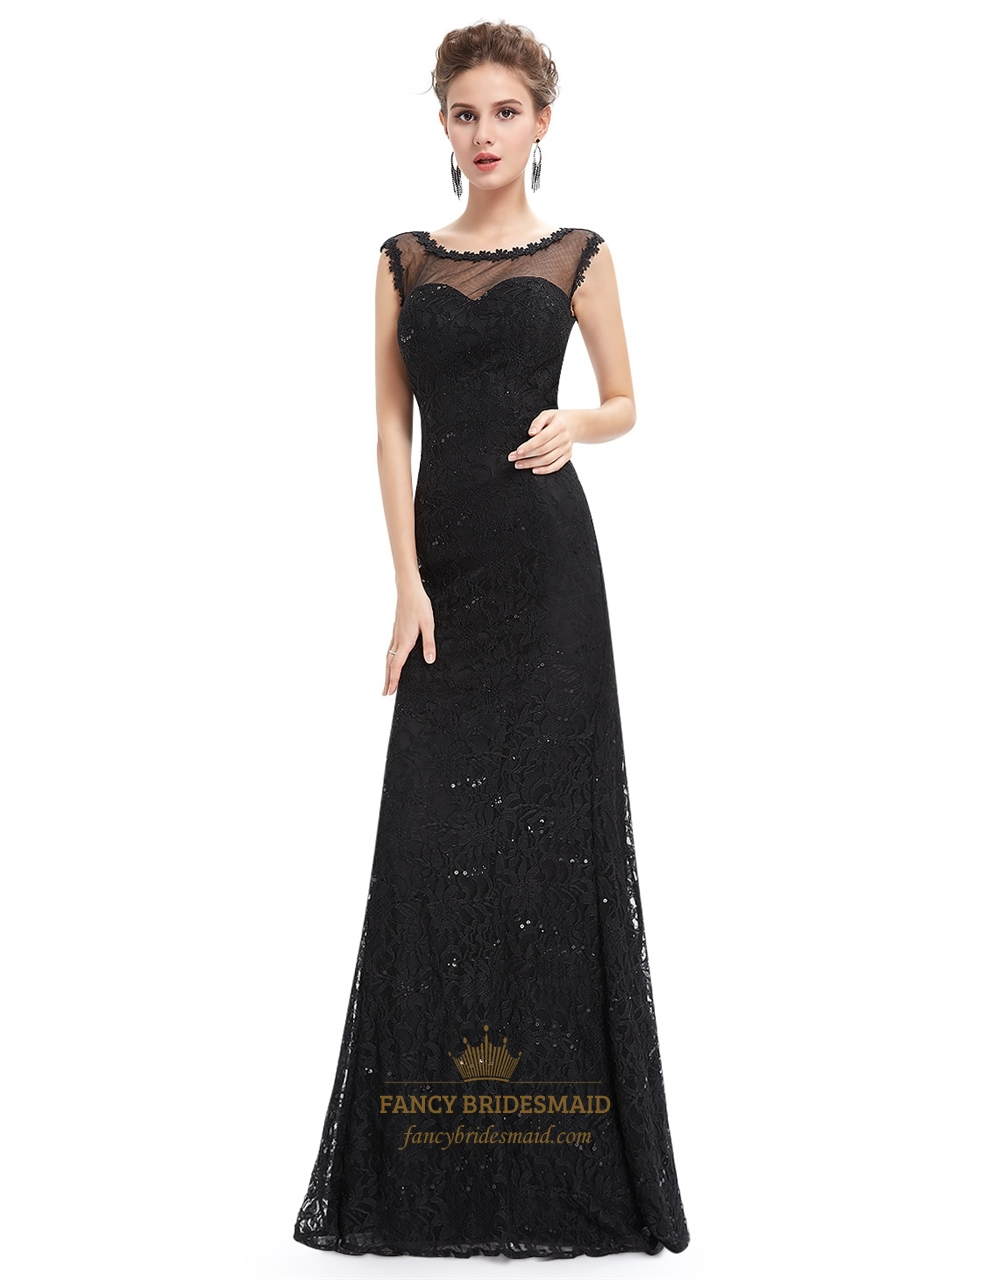 Black Floor Length Illusion Neck Prom Dress With Lace Applique ...